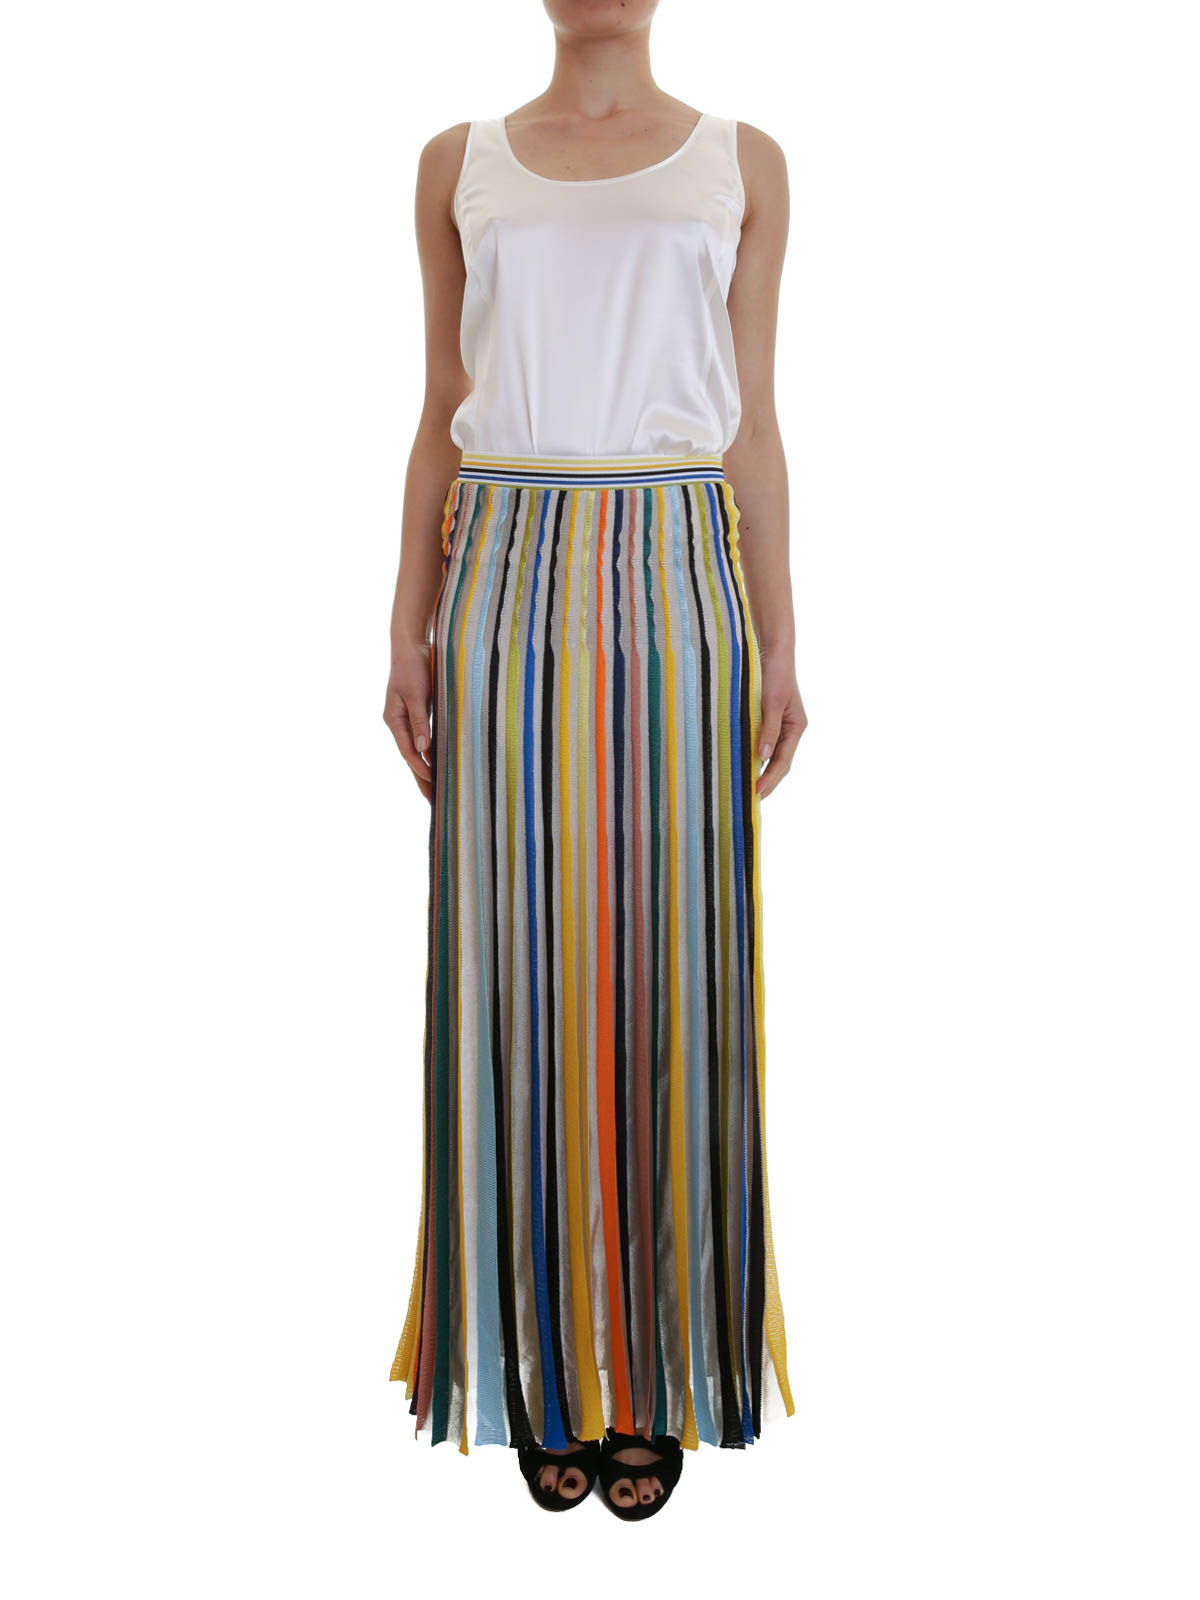 design senza tempo 1334f 173ee Missoni - Lunga gonna a pieghe - Gonne Lunghe - MD 194627 3680